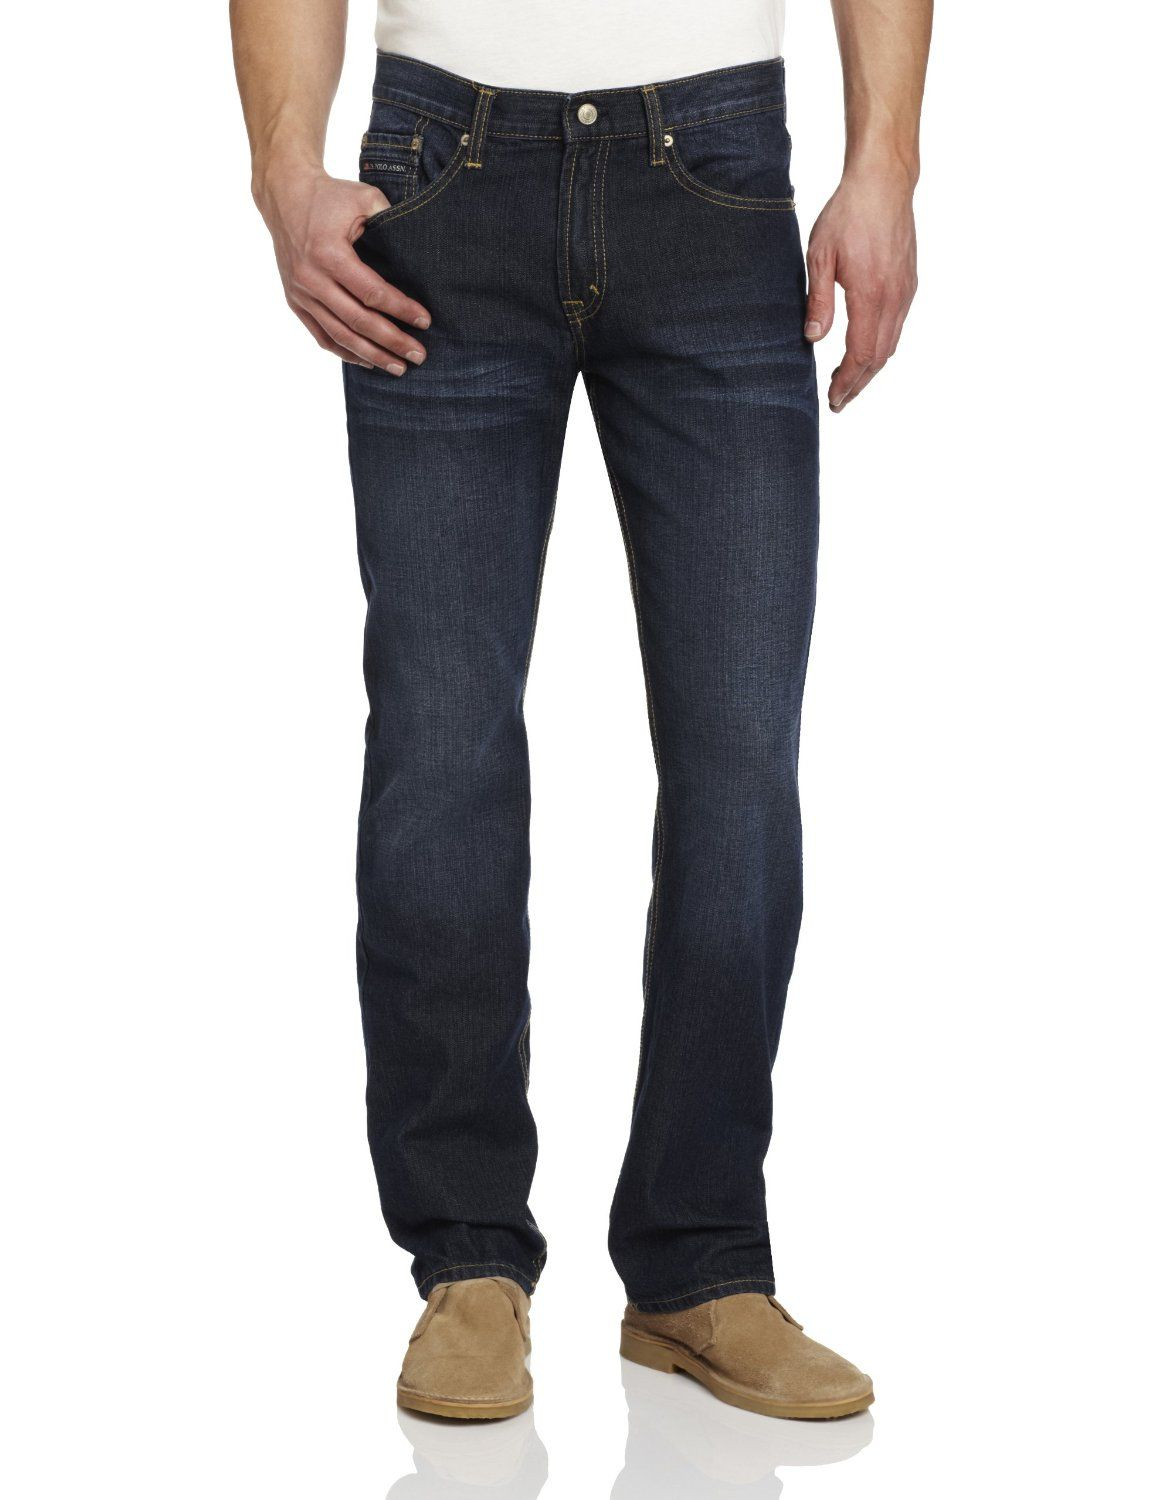 Similar to Fidelity Denim